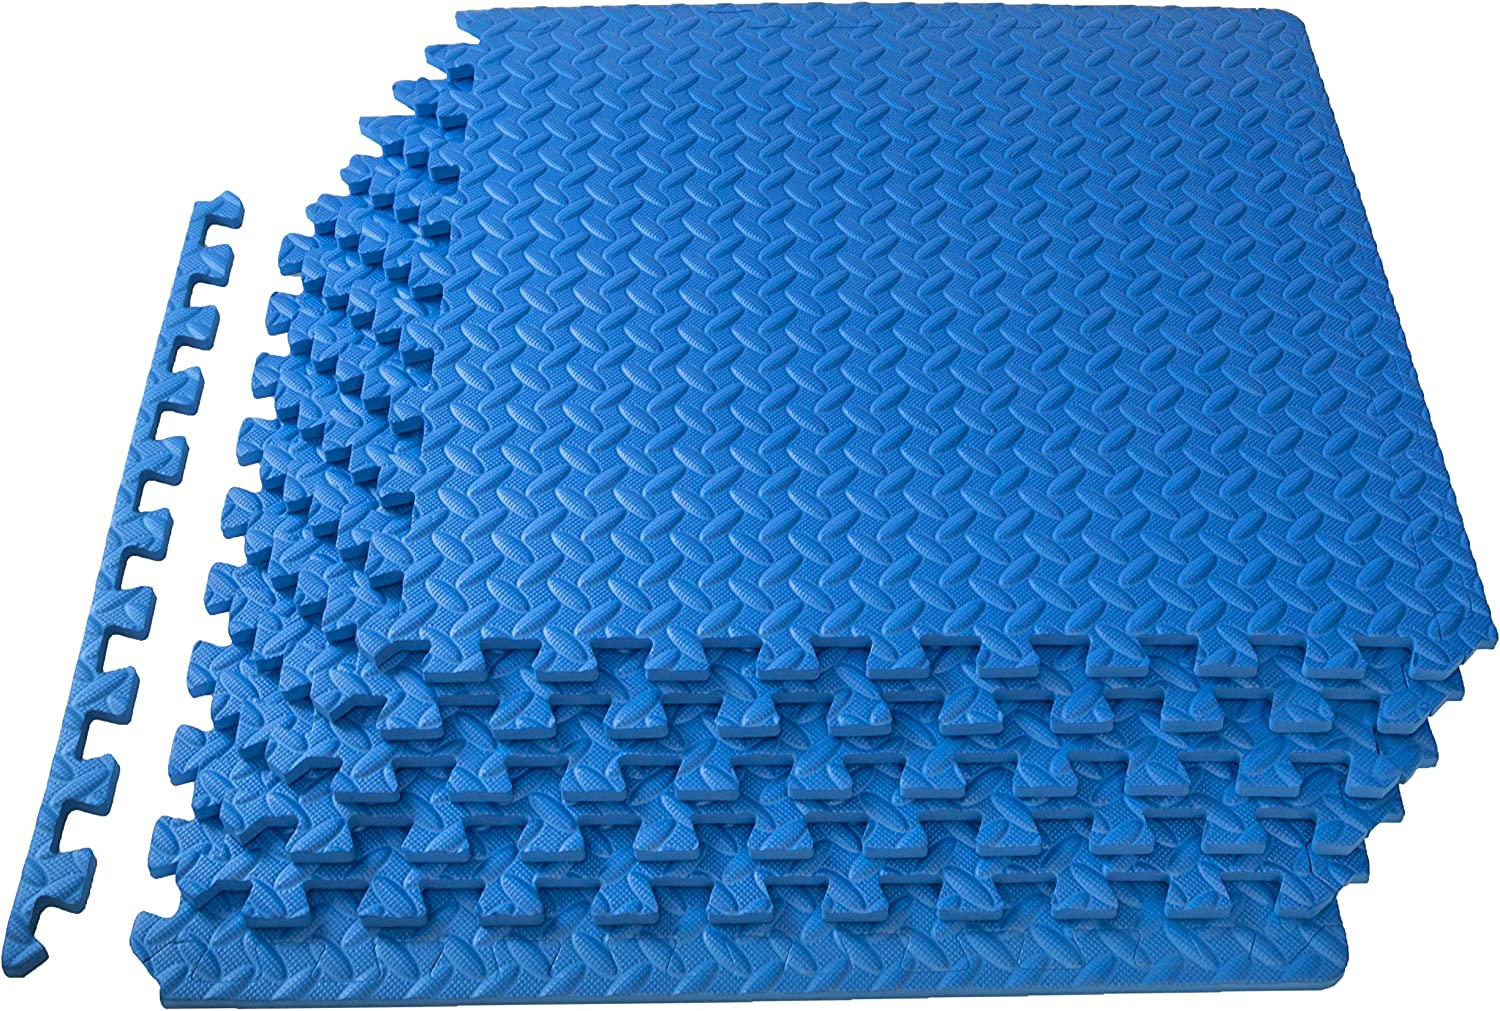 ProsourceFit Extra Thick Puzzle Exercise Mat1/2, EVA Foam Interlocking Tiles for Protective, Cushioned Workout Flooring for Home and Gym Equipment, Blue : Sports & Outdoors